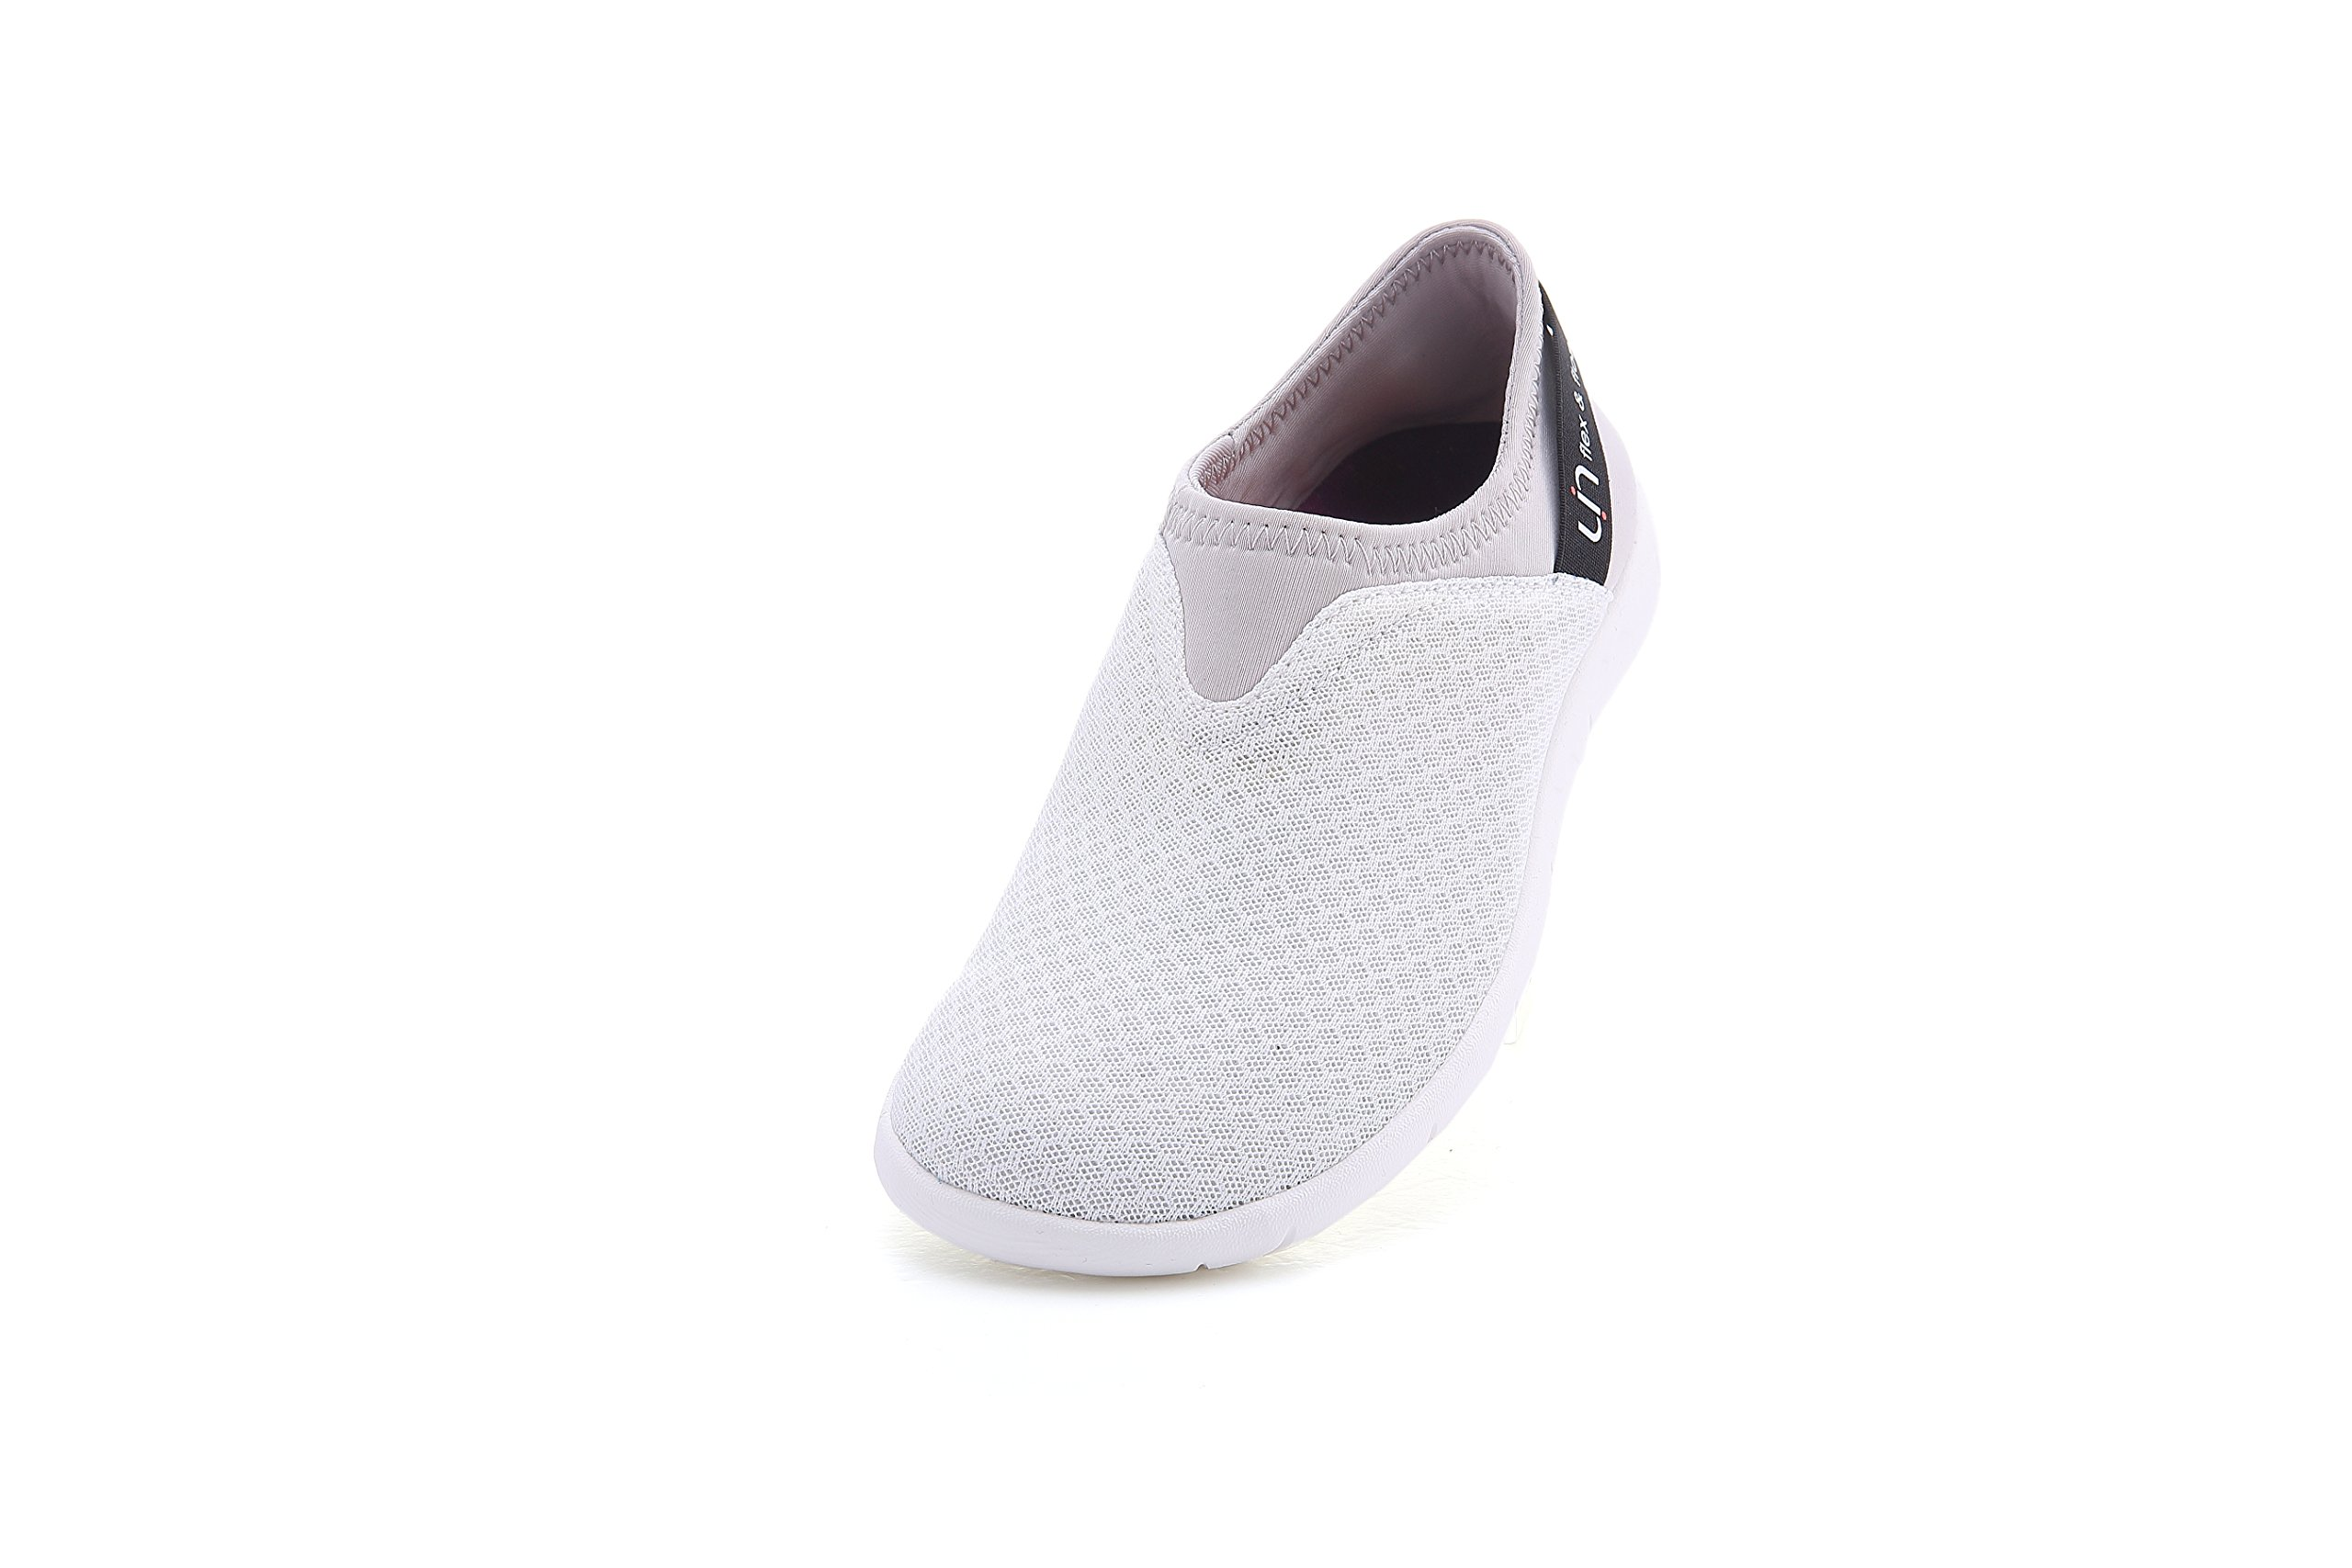 UIN Women's Verona Casual Mesh Cloth Travel Slip-on Shoes White (4.5)